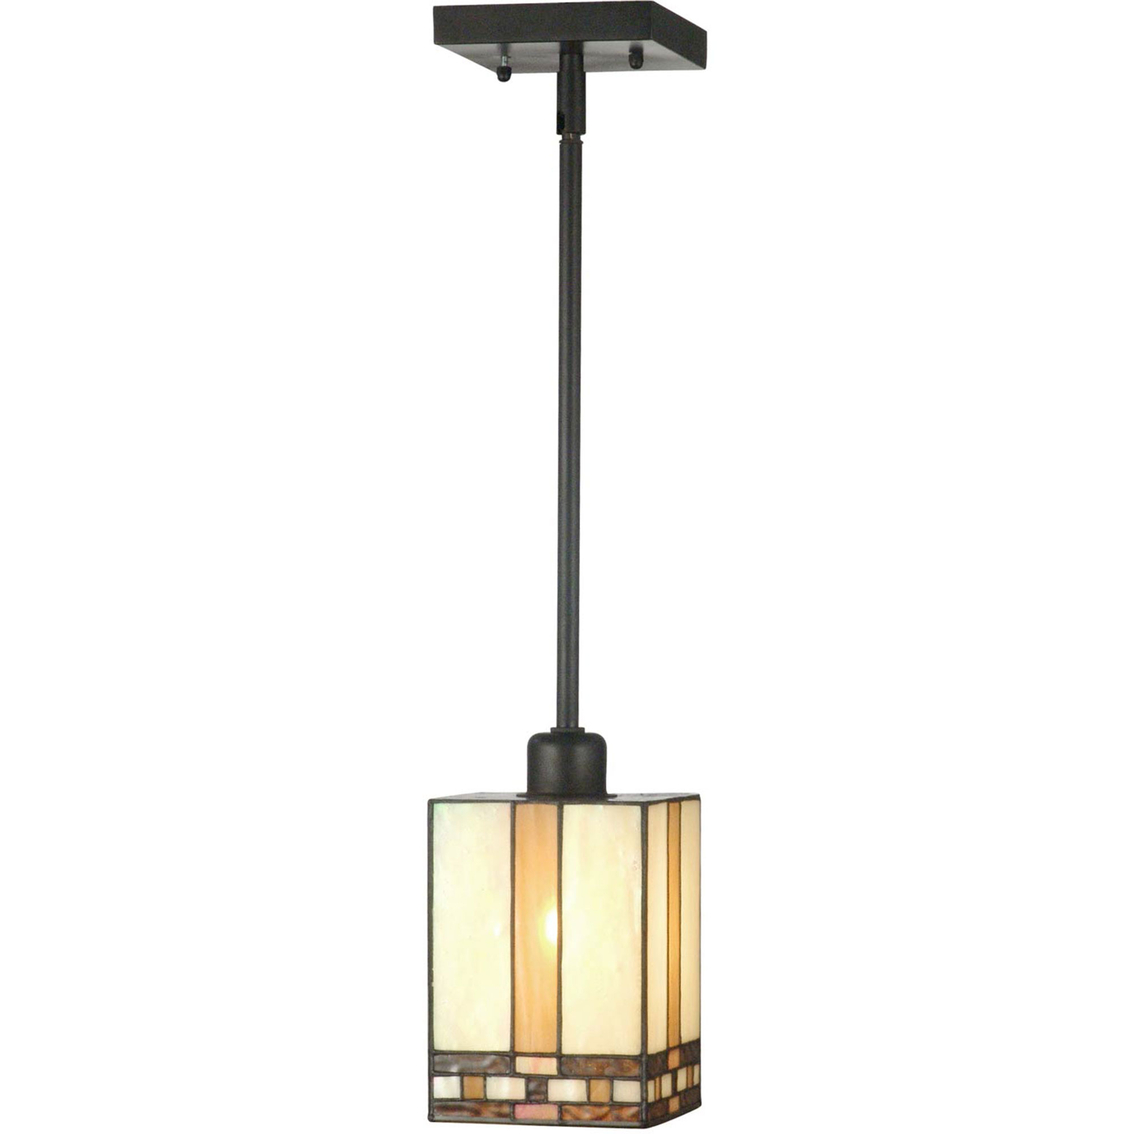 Dale tiffany mission mini pendant lamp ceiling lights home 1410 aloadofball Images